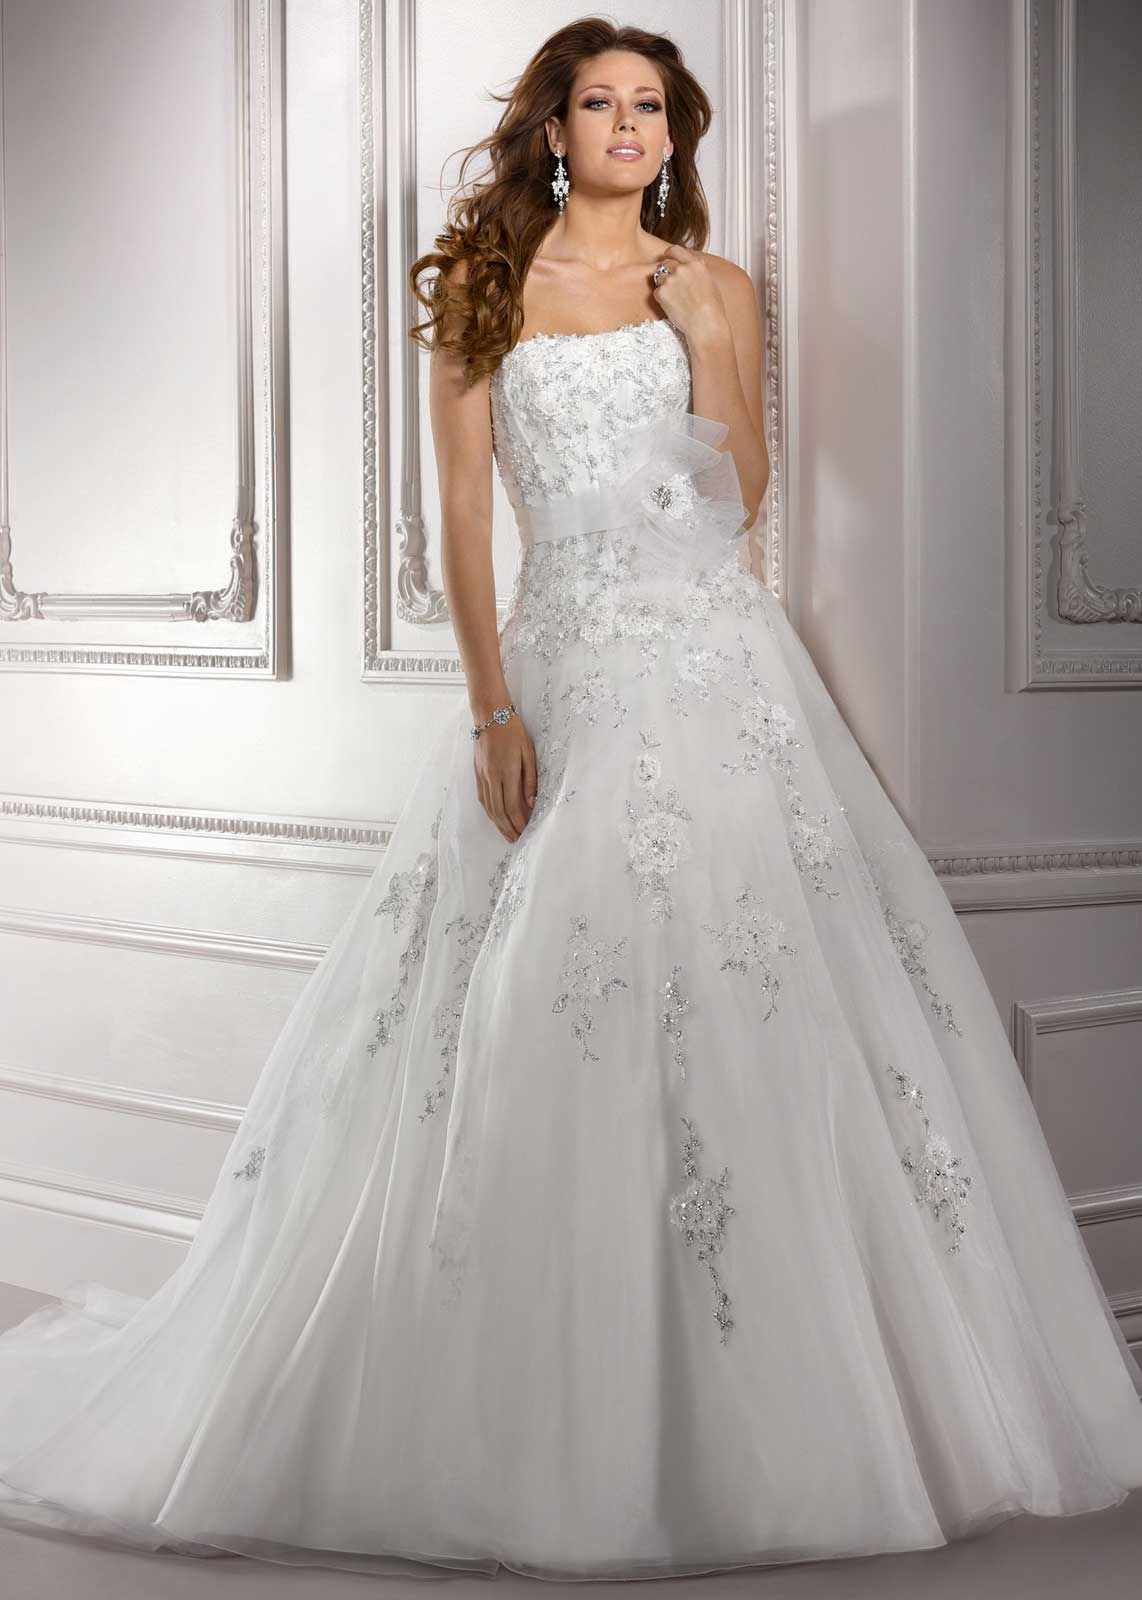 Organza & Strapless Neckline Ball Gown Wedding Dresses Photos HD Concepts Ideas